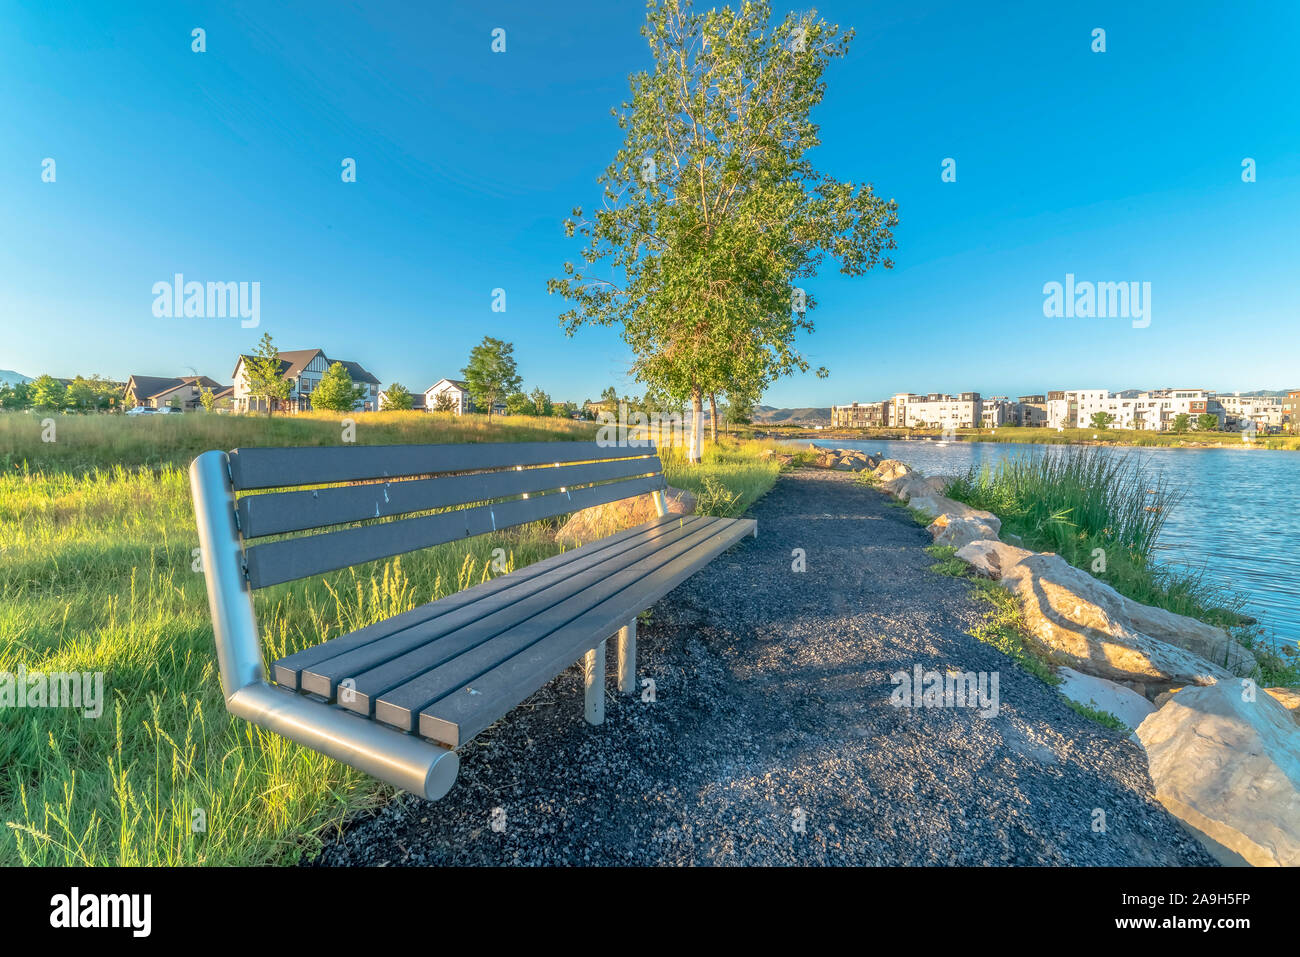 Bench at the shore of a lake with homes and buildings background on a sunny day Stock Photo